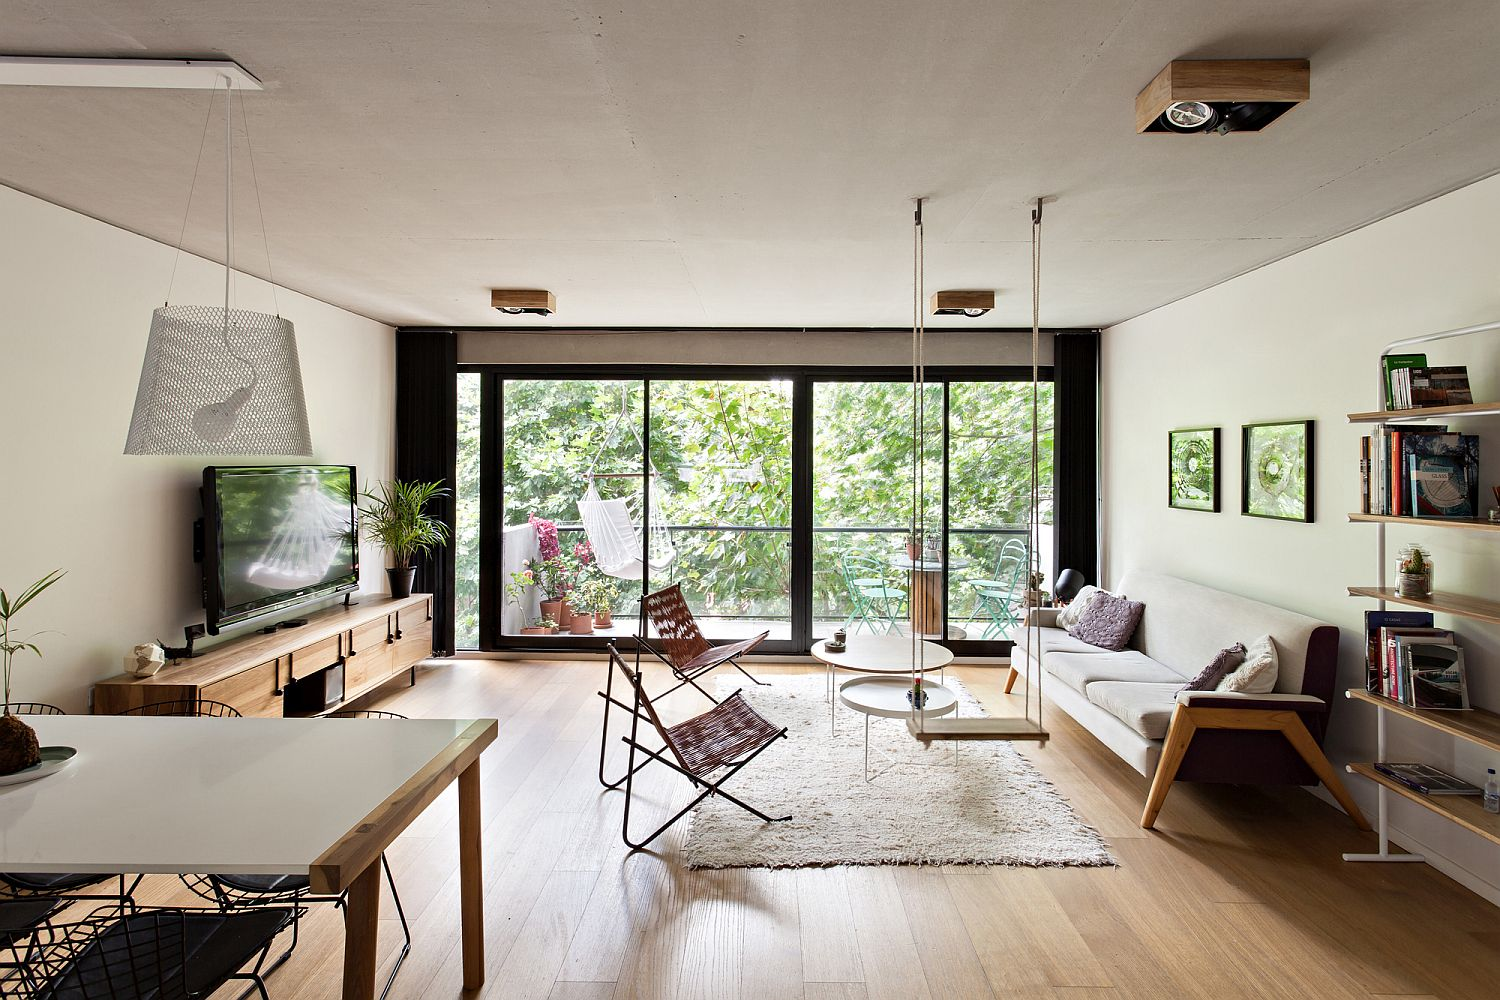 Living-room-with-multiple-seating-options-and-a-view-of-the-canopy-outdoors